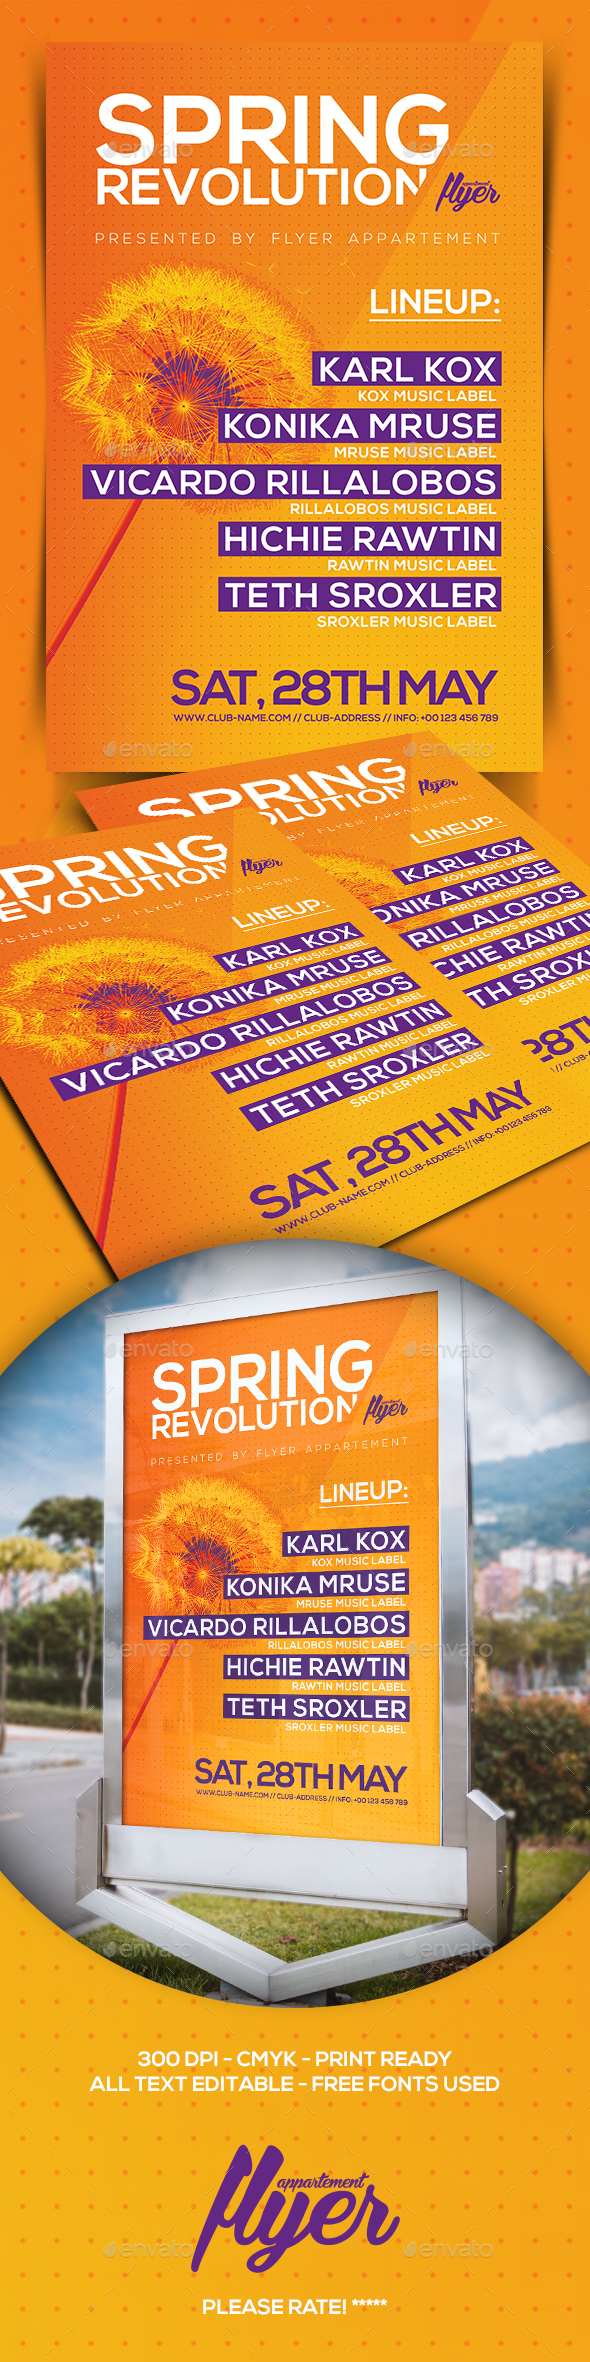 Spring Revolution Flyer - Clubs & Parties Events